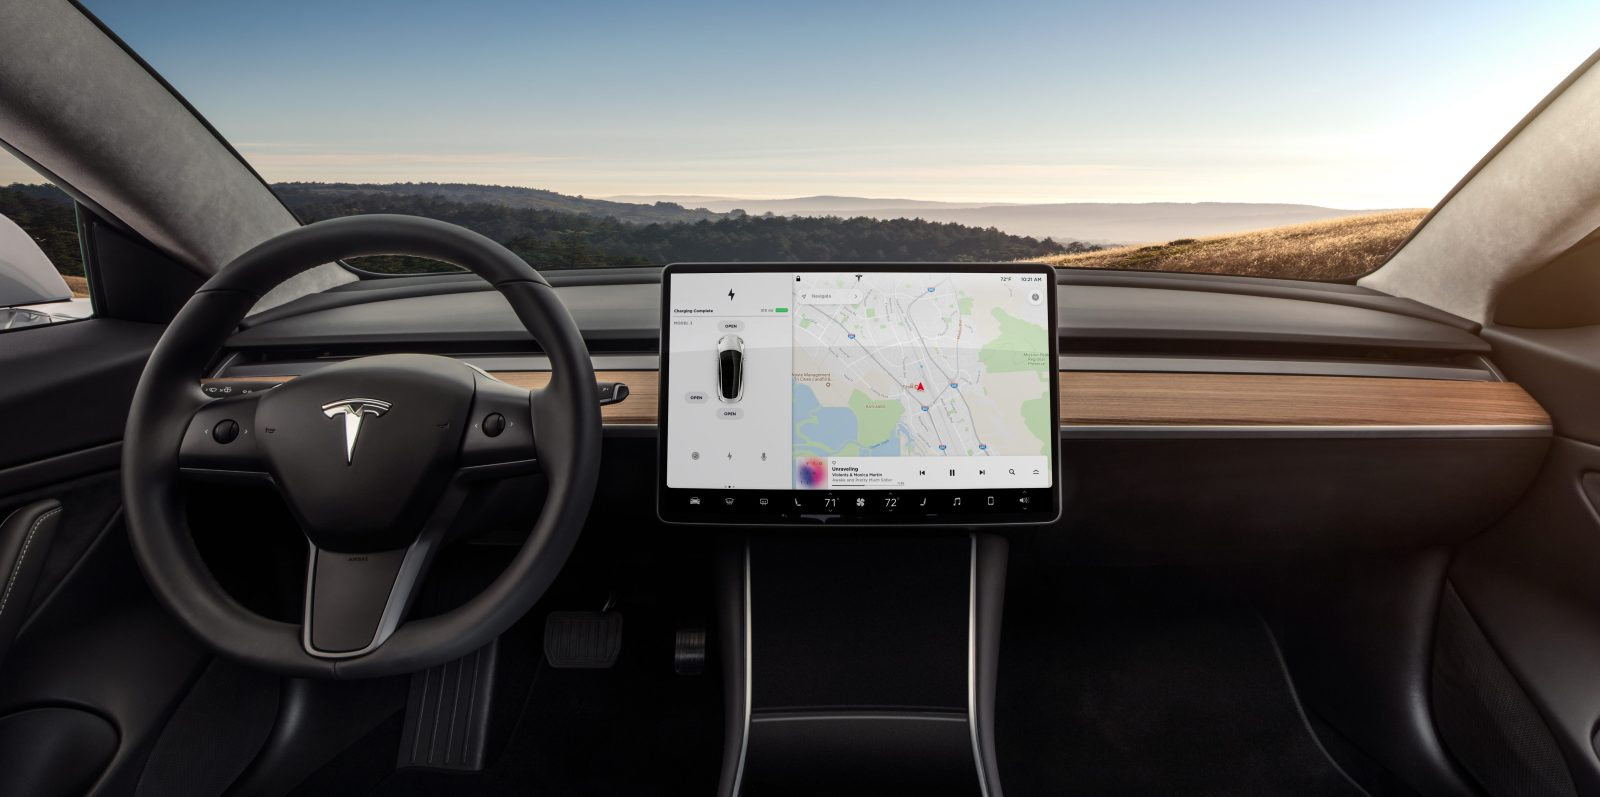 tesla asks trump administration for a tariff exemption on critical computer in model 3 [ 1600 x 797 Pixel ]